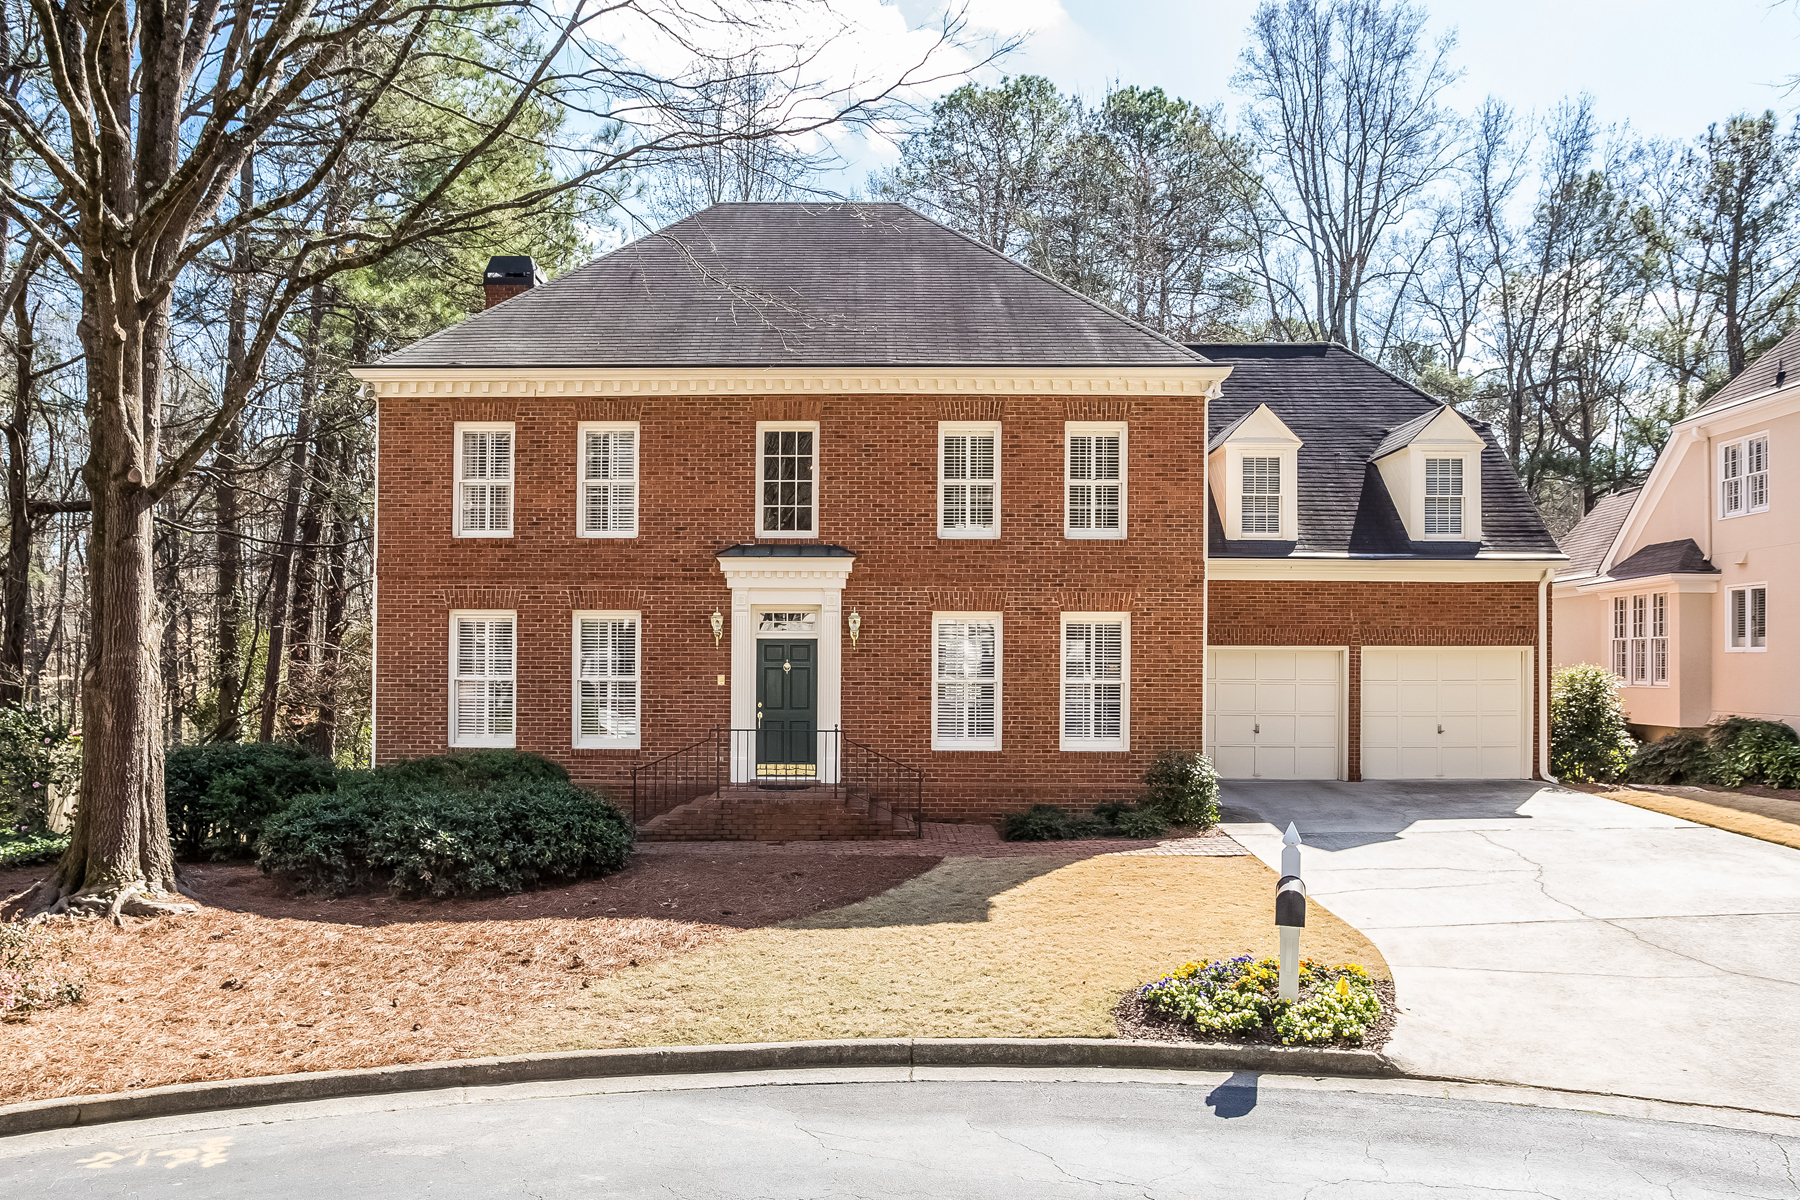 Villa per Vendita alle ore Classic Sandy Springs Traditional 245 Woodchase Close NE Sandy Springs, Georgia, 30319 Stati Uniti